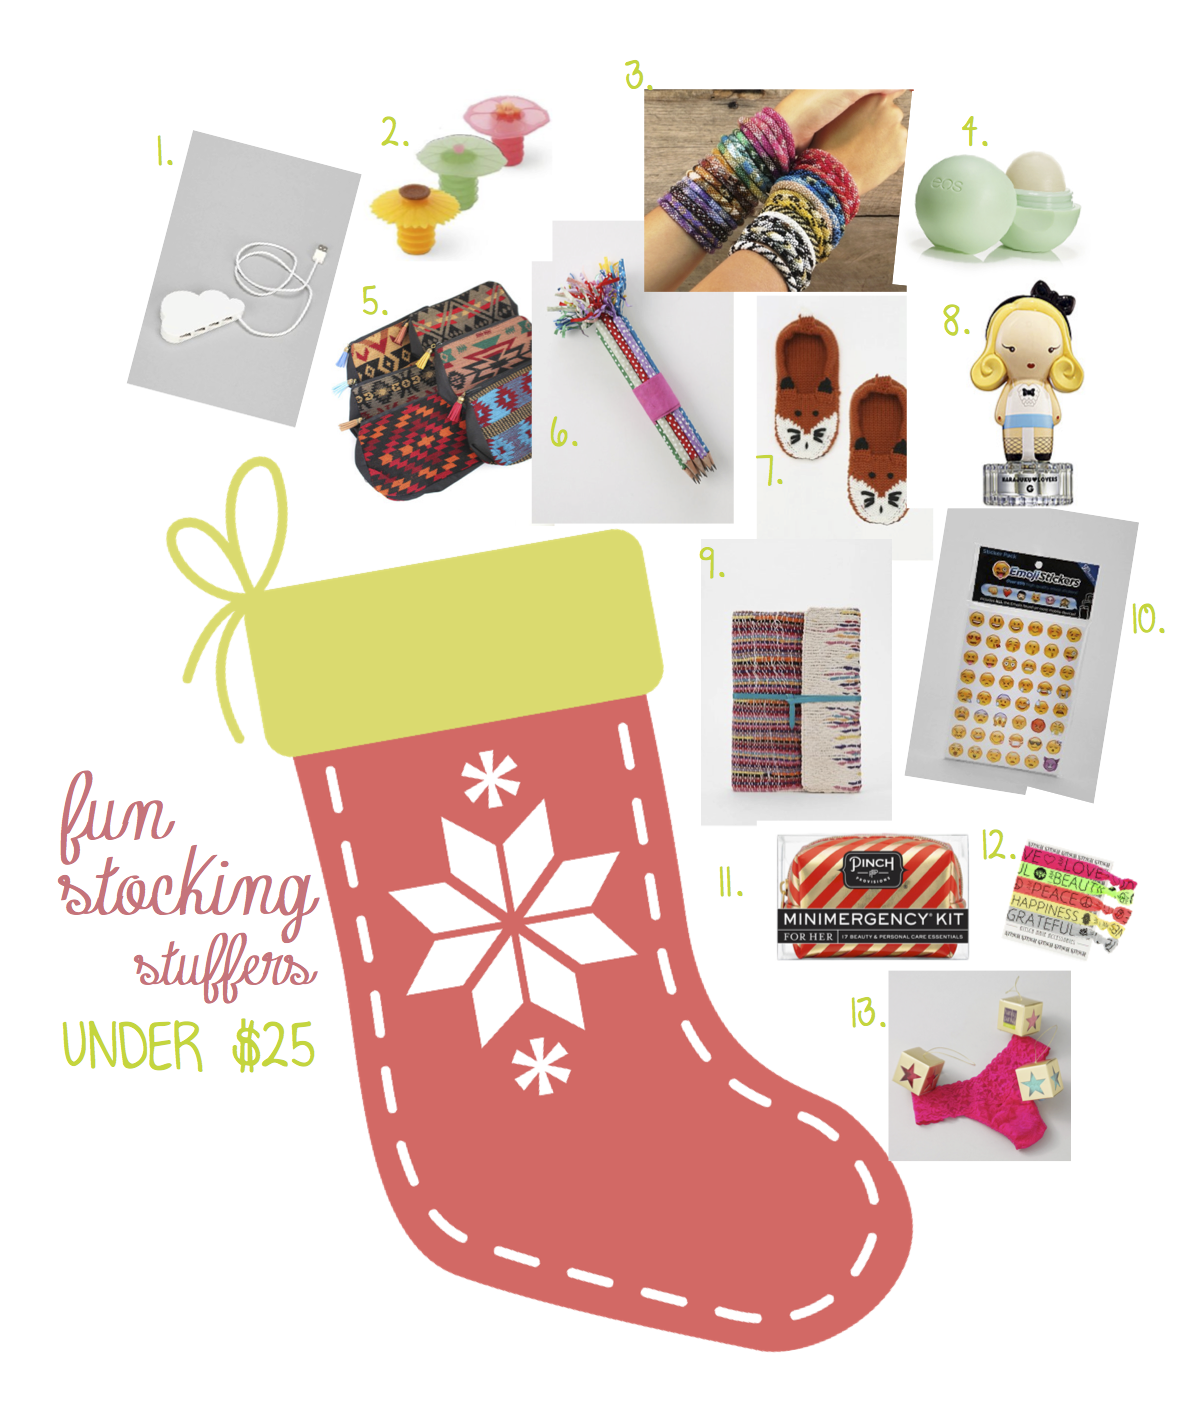 Cool Stocking Stuffers Magnificent Of Fun Stocking Stuffers Image